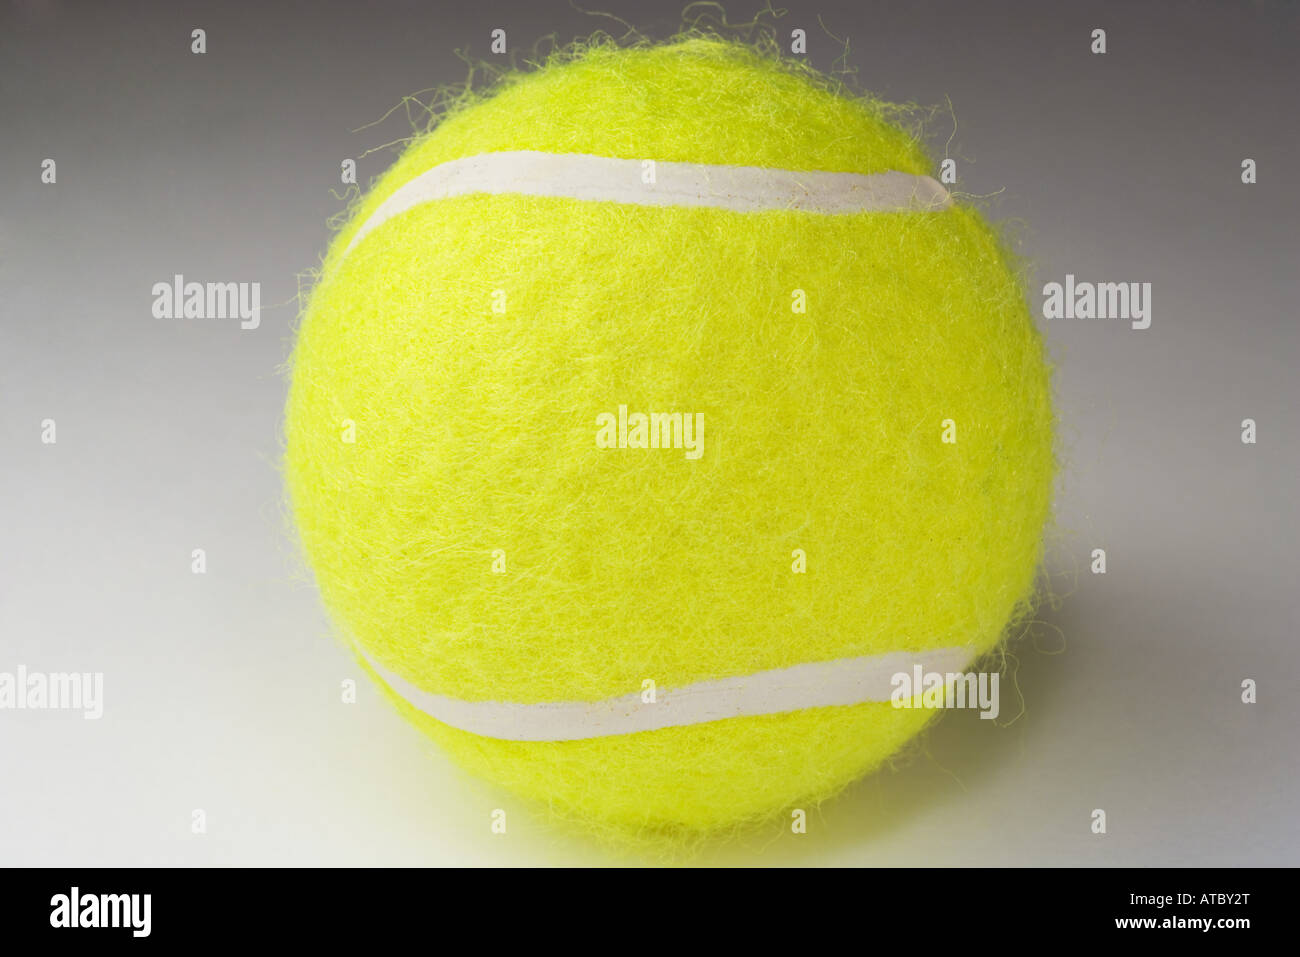 Tennisball, close-up Stockbild